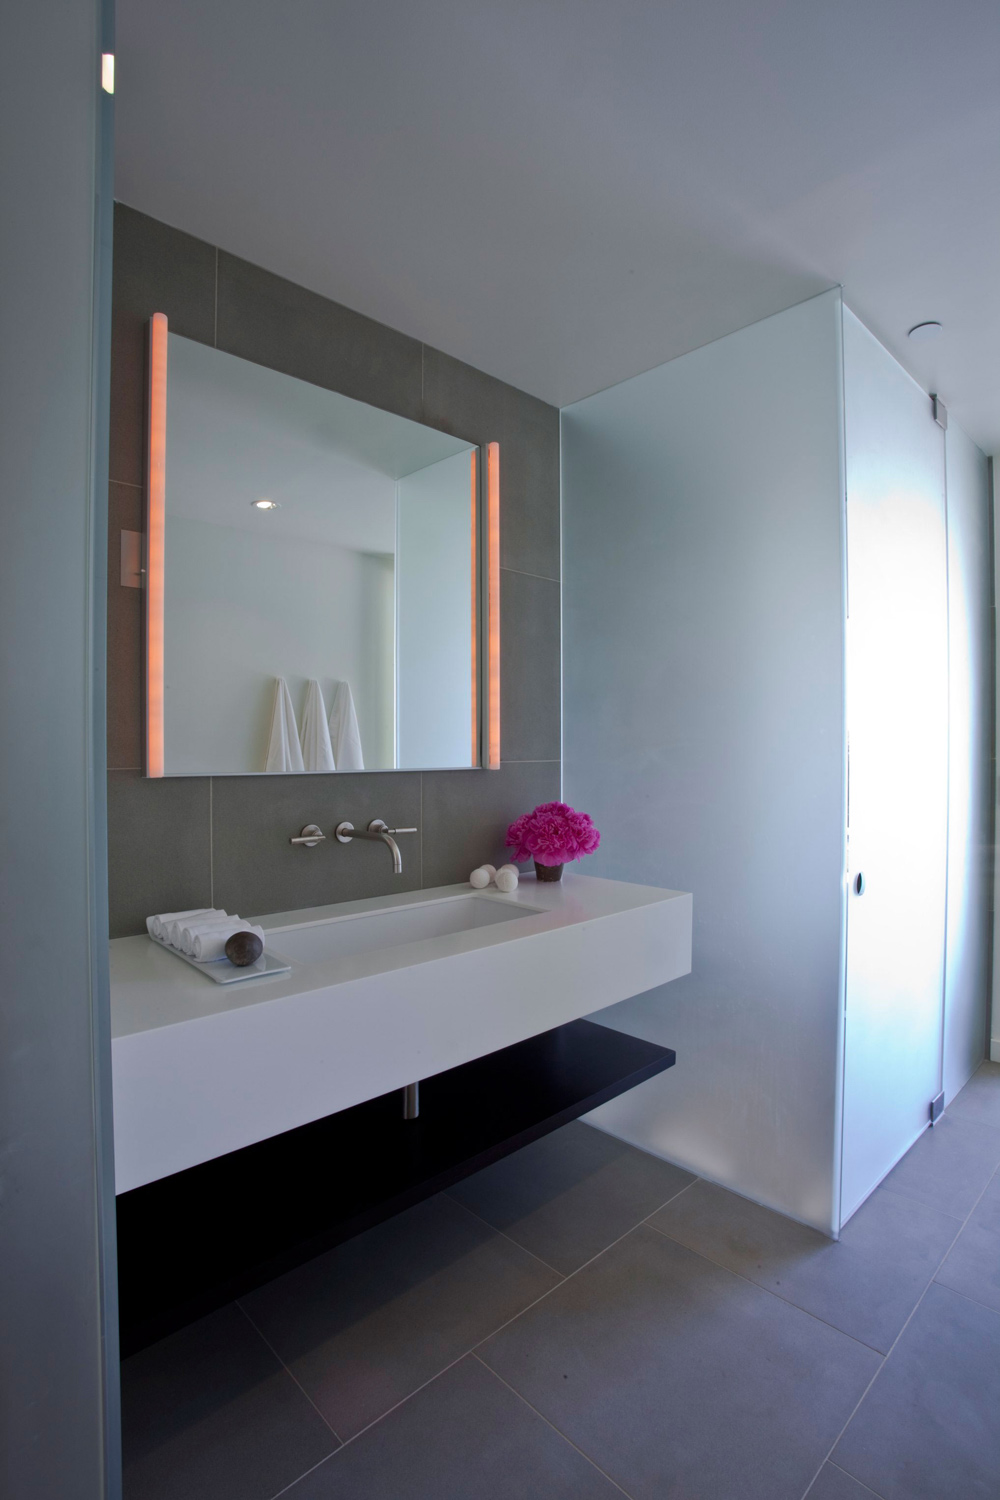 Espejos Rectangulares Bathroom Mirror, Lighting, Elegant Modern Interior In